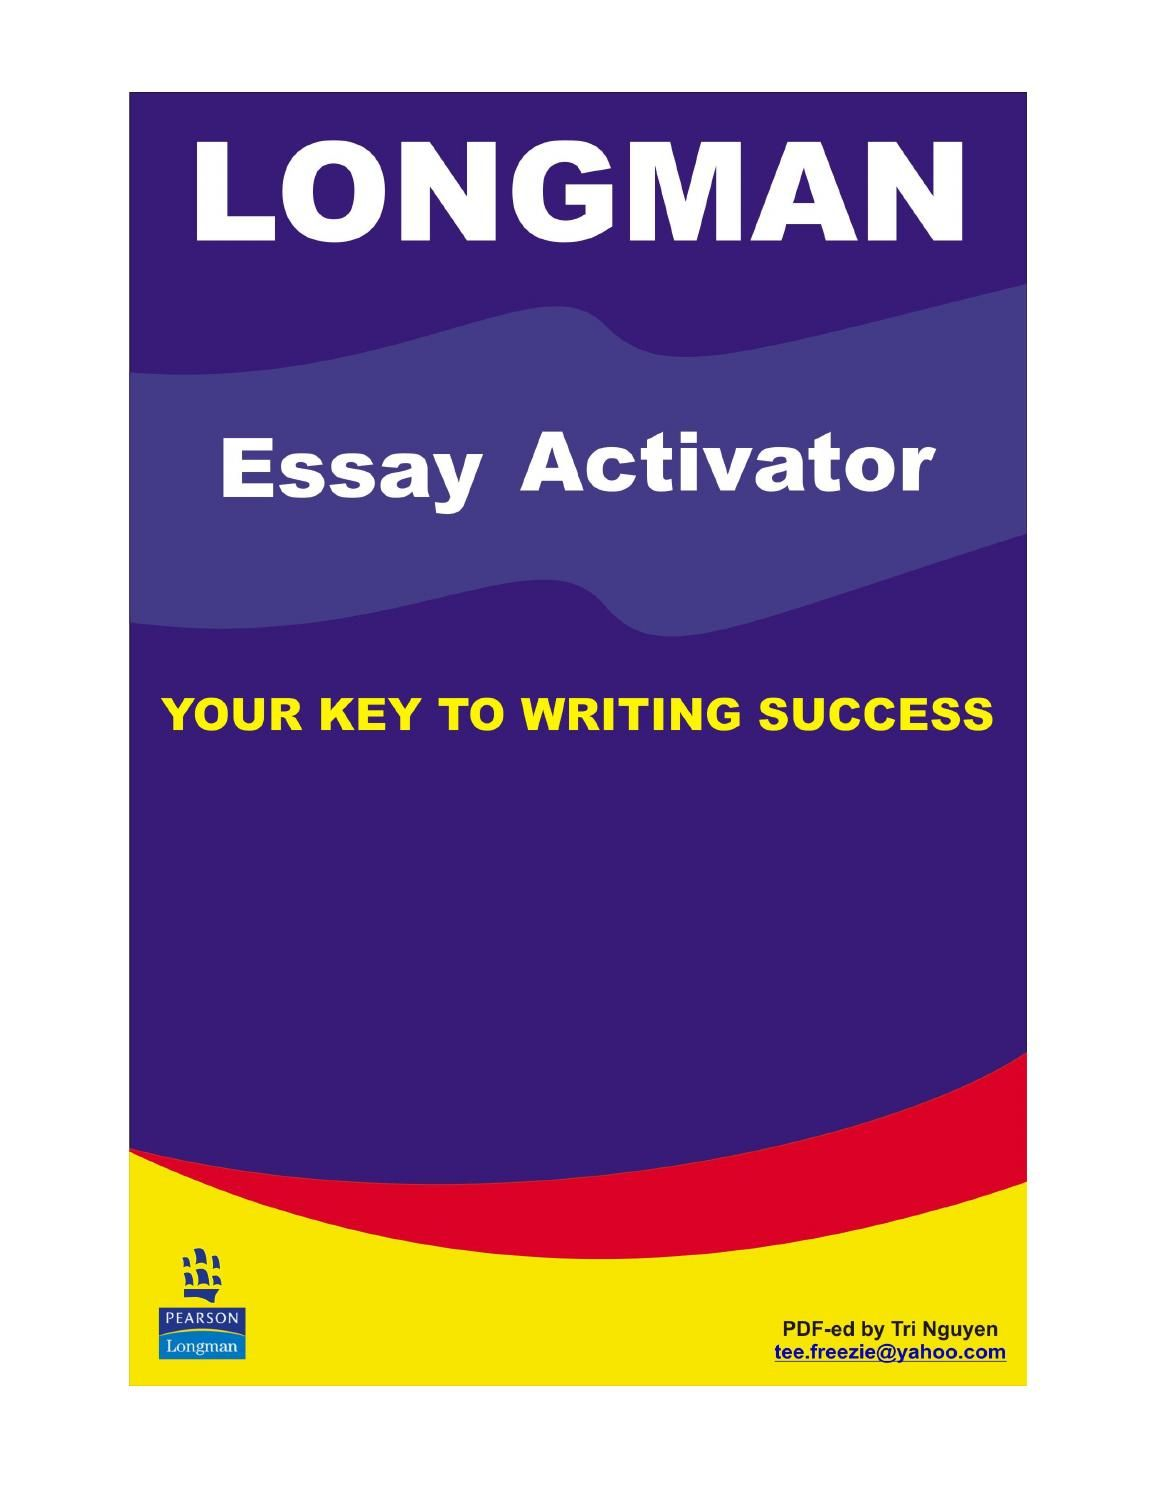 longman essay activator  learn english  pinterest  learn english  longman essay activator different languages learn english english language  worksheets learning english